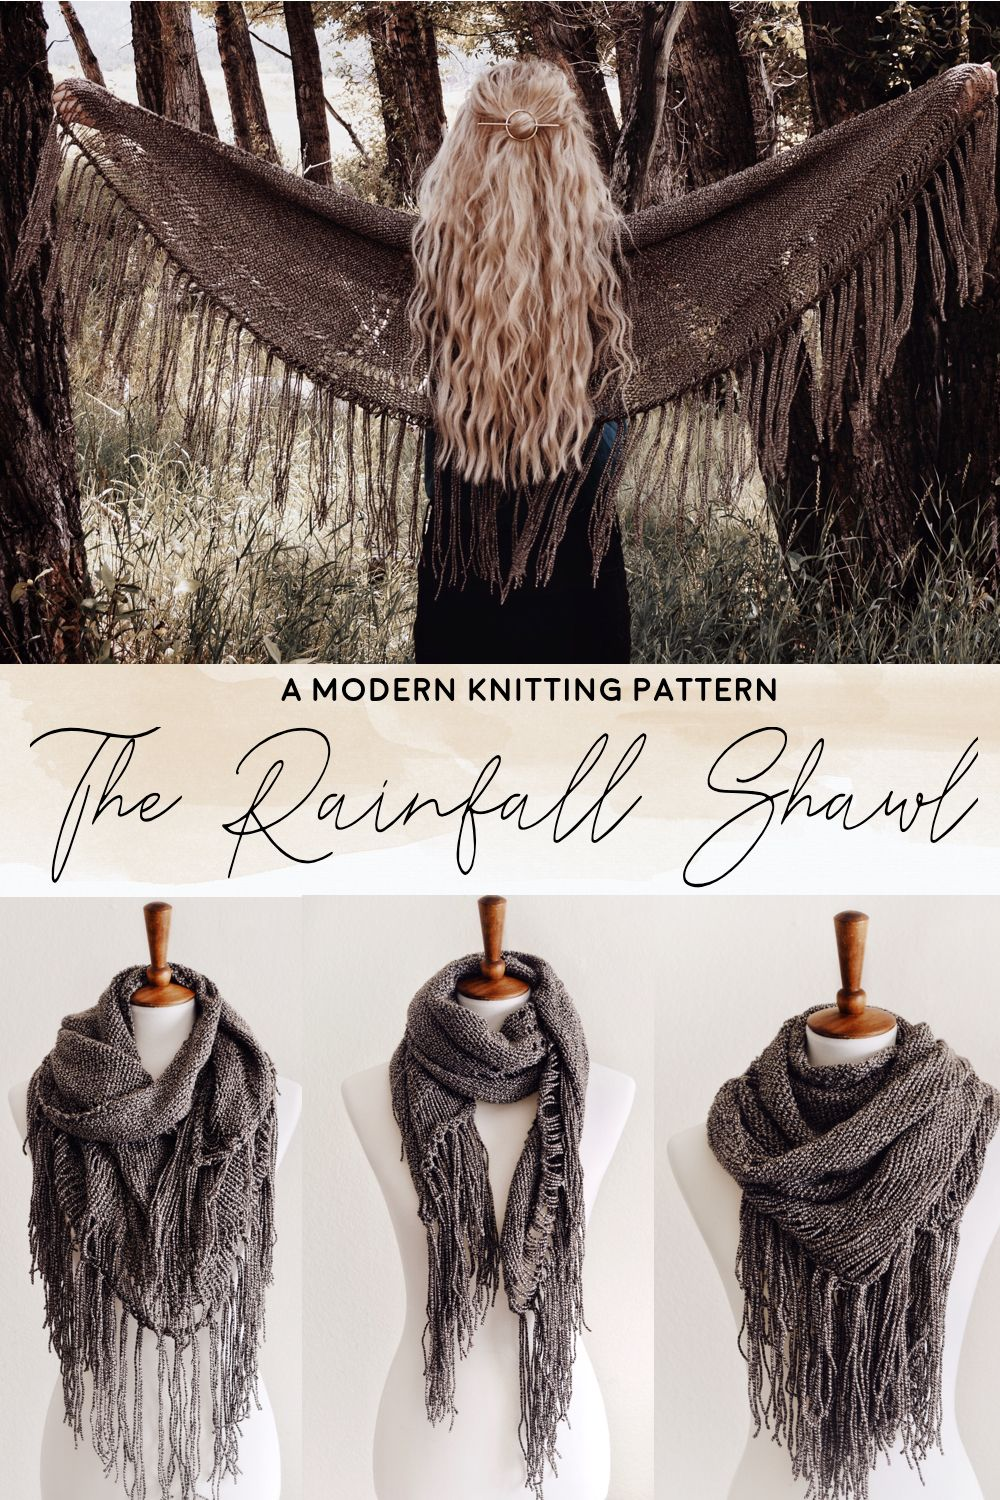 Knit Boho-Western Shawl With Tassels Knitting Pattern by Darling Jadore | THE RAINFALL SHAWL